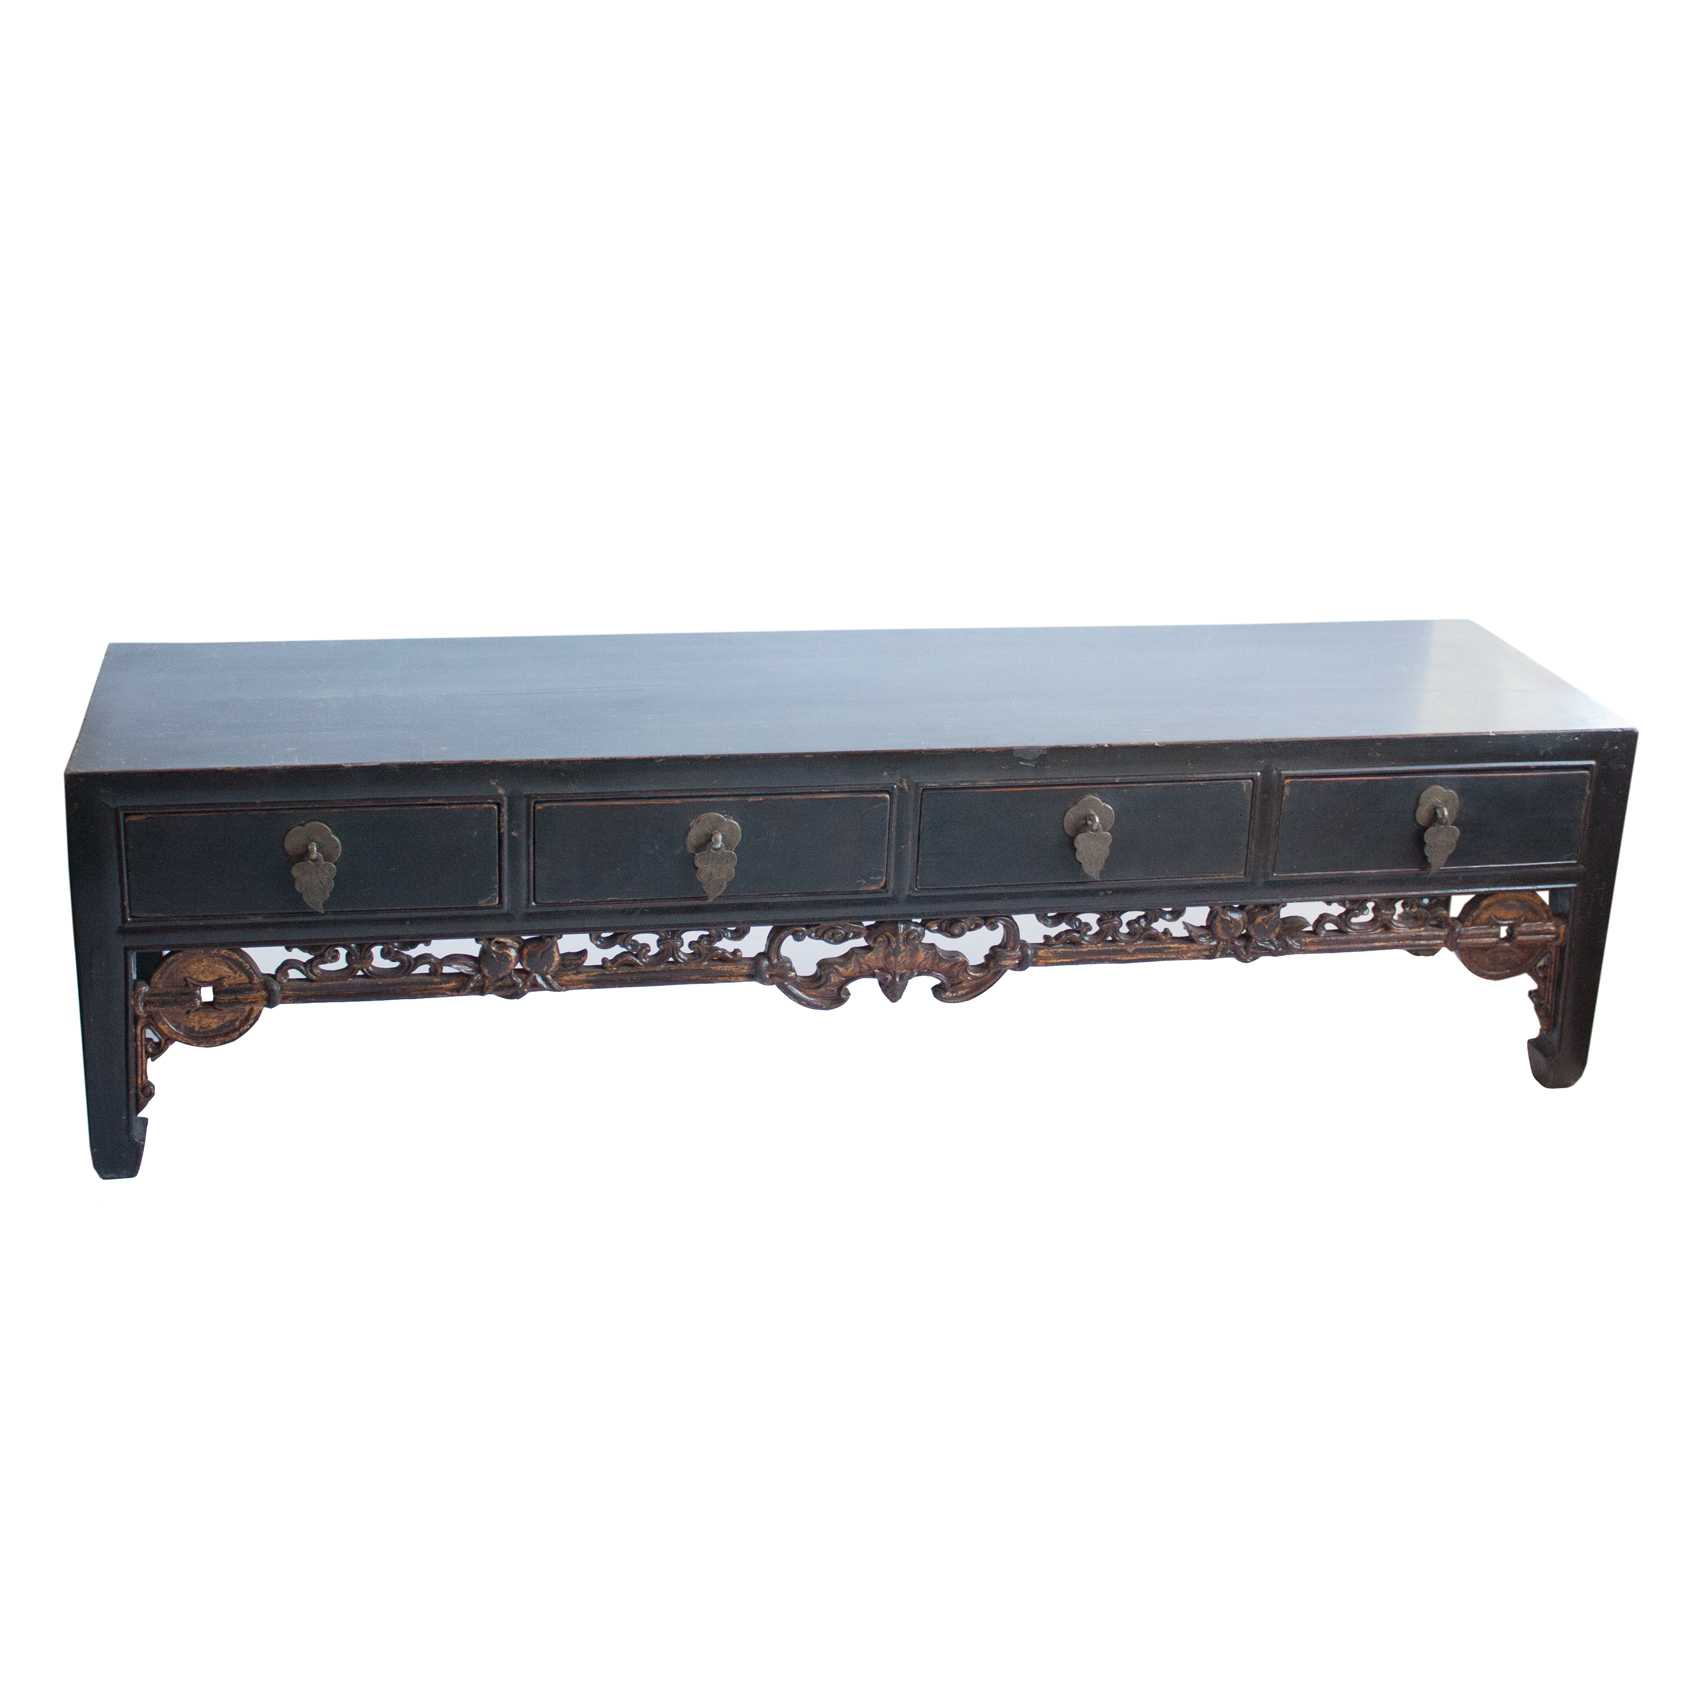 Japanese tea table dimensions -  14929 Antique Black Lacquer Kang Table With Drawers And Rare Carved Bat And Coin Design In Gilt